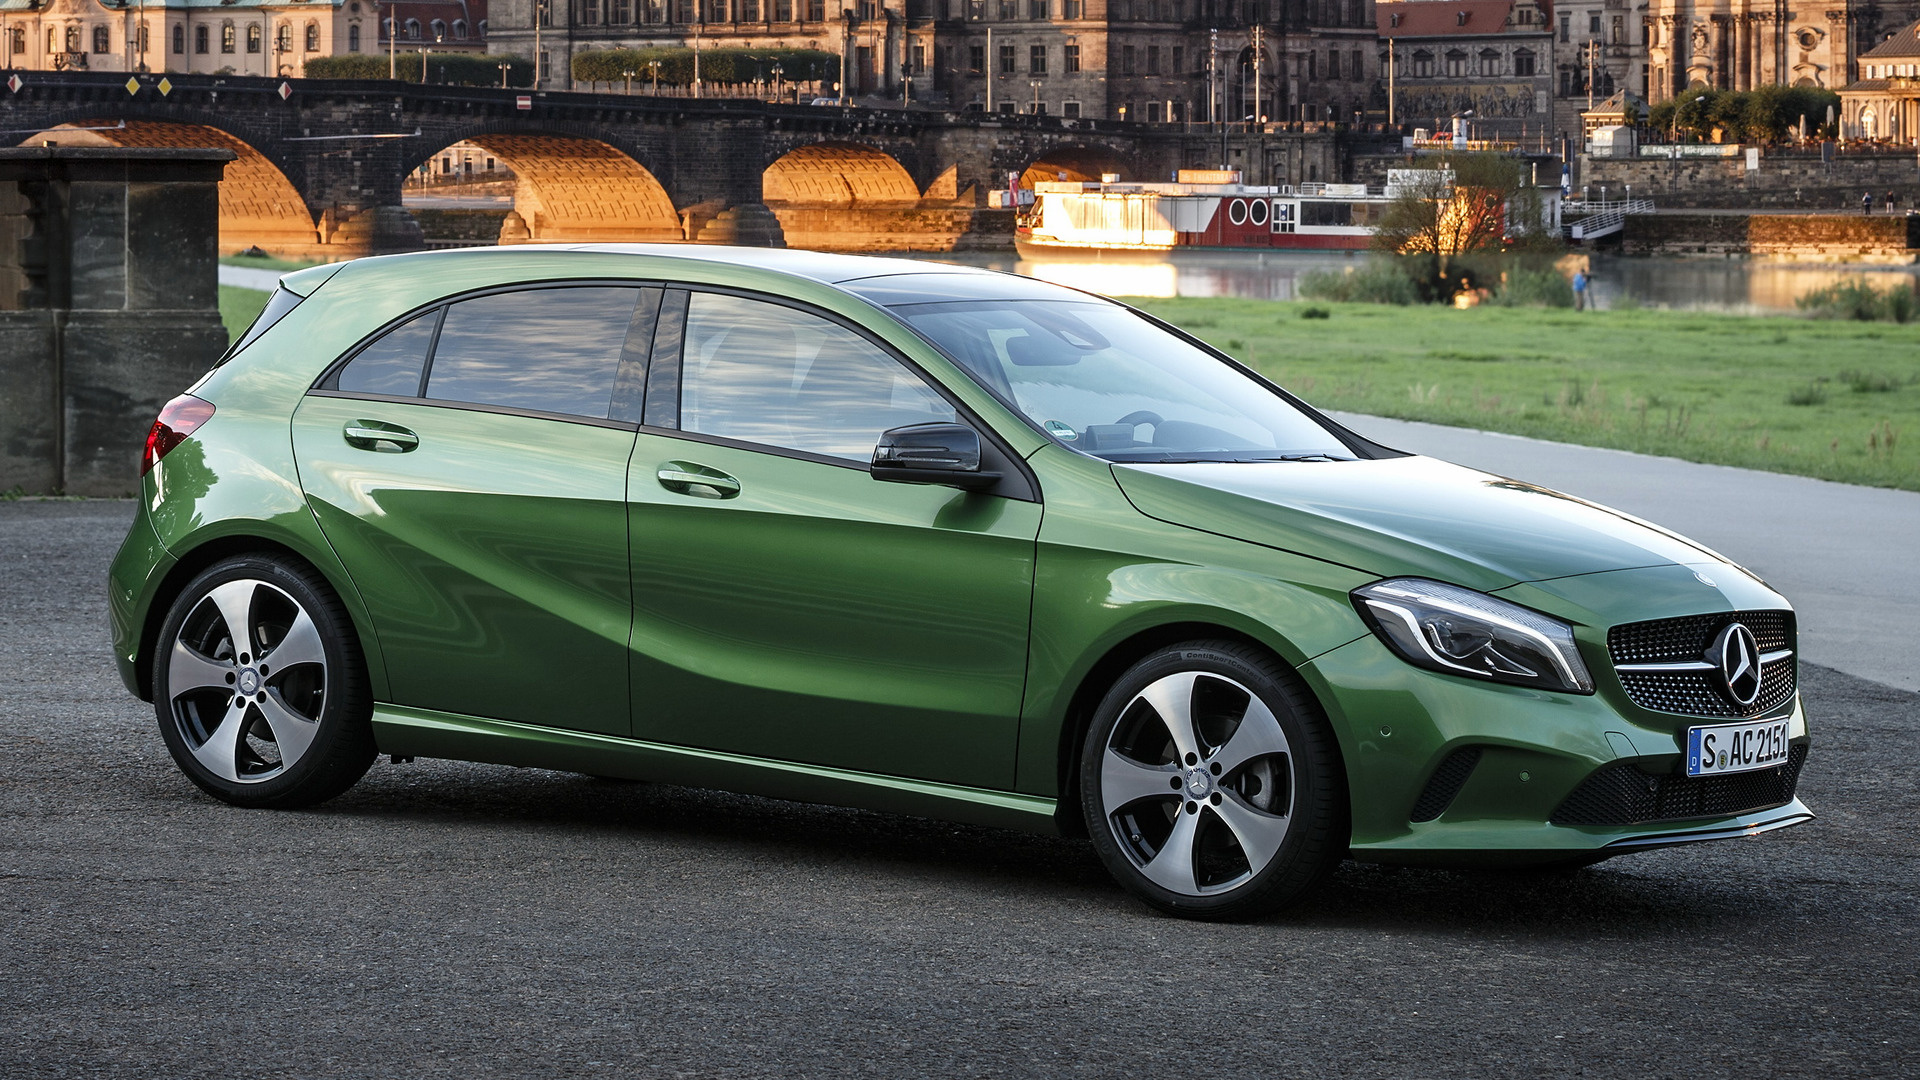 Mercedes benz a class 2015 wallpapers and hd images for Mercedes benz 6550